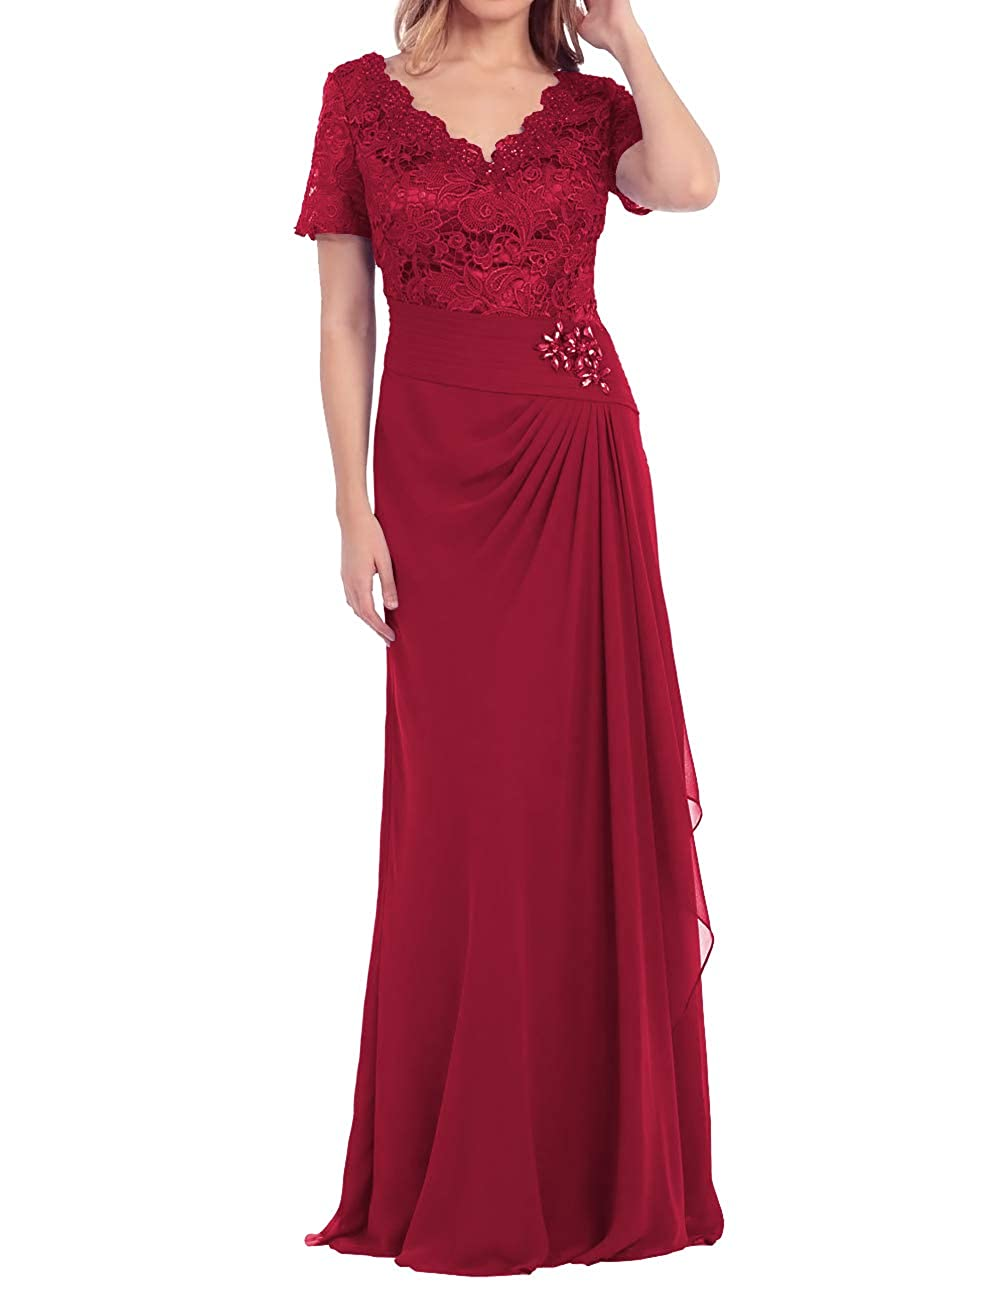 Burgundy Mother of The Bride Dress Beaded Lace Prom Evening Gowns